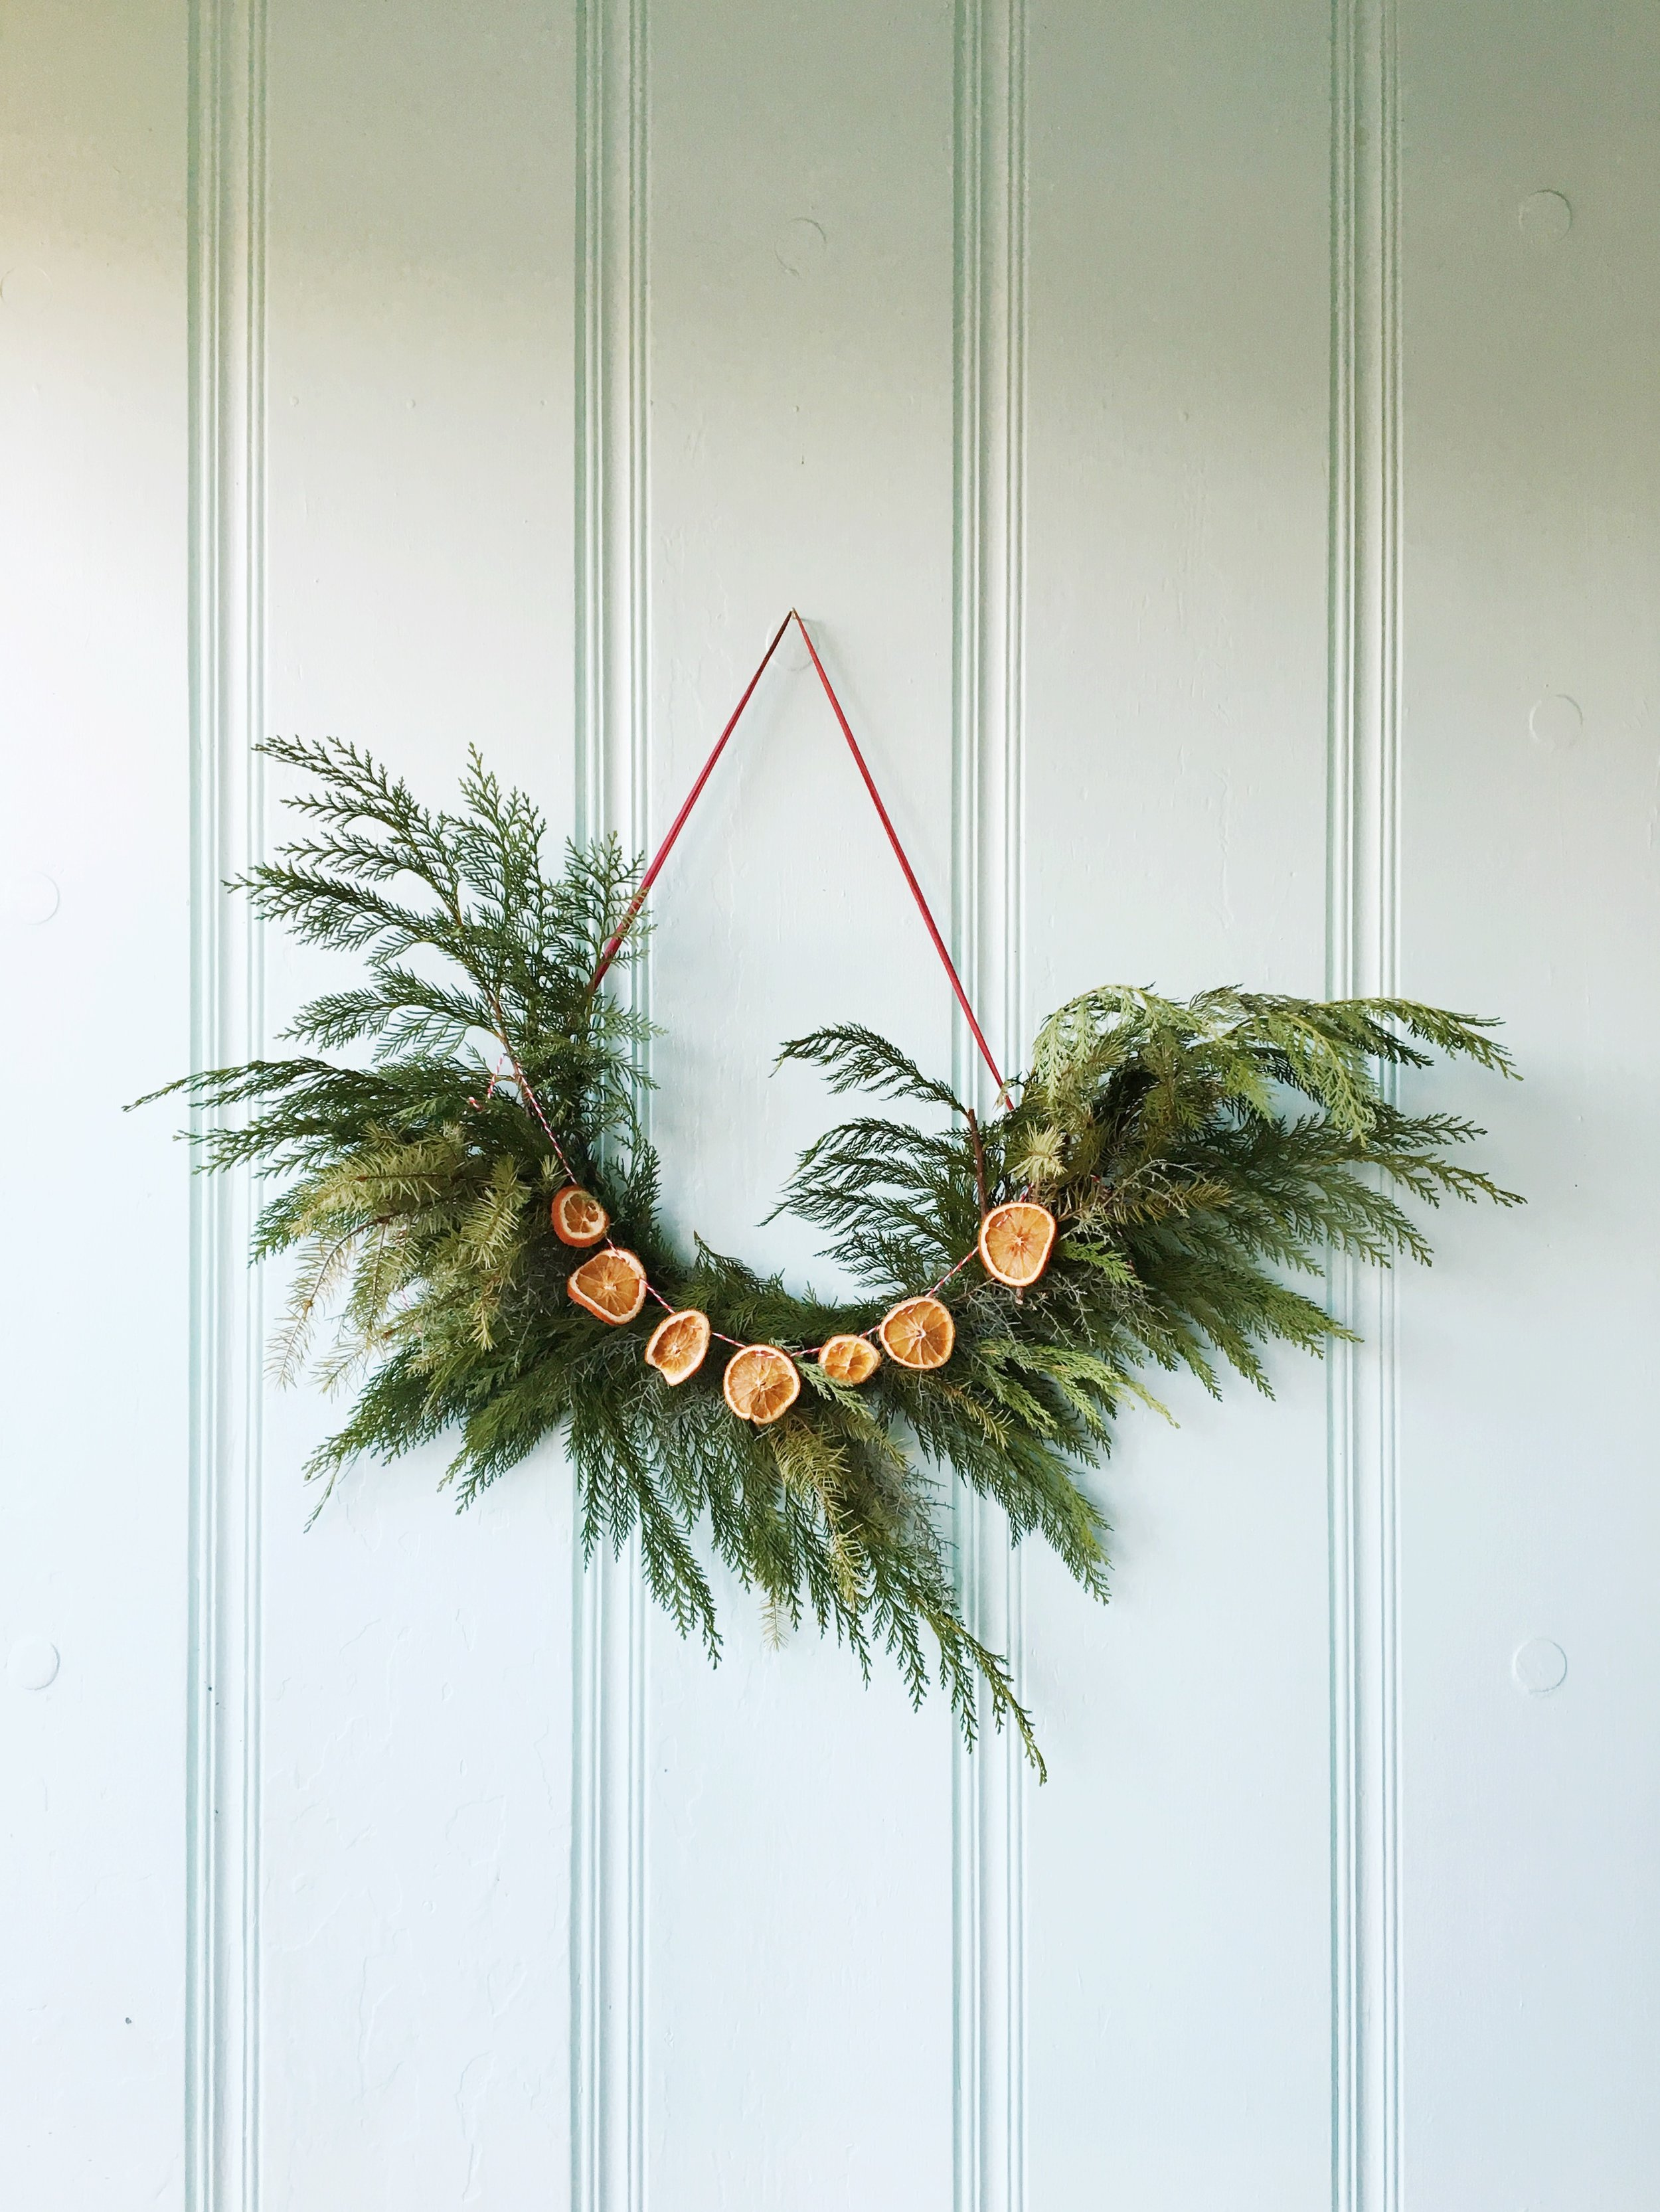 Ashley Daly picked up a beauty of a wreath from  Ever Something  and hung it against her seafoam green house. She also spiced it up a bit with dried orange garland. Oh yeah!